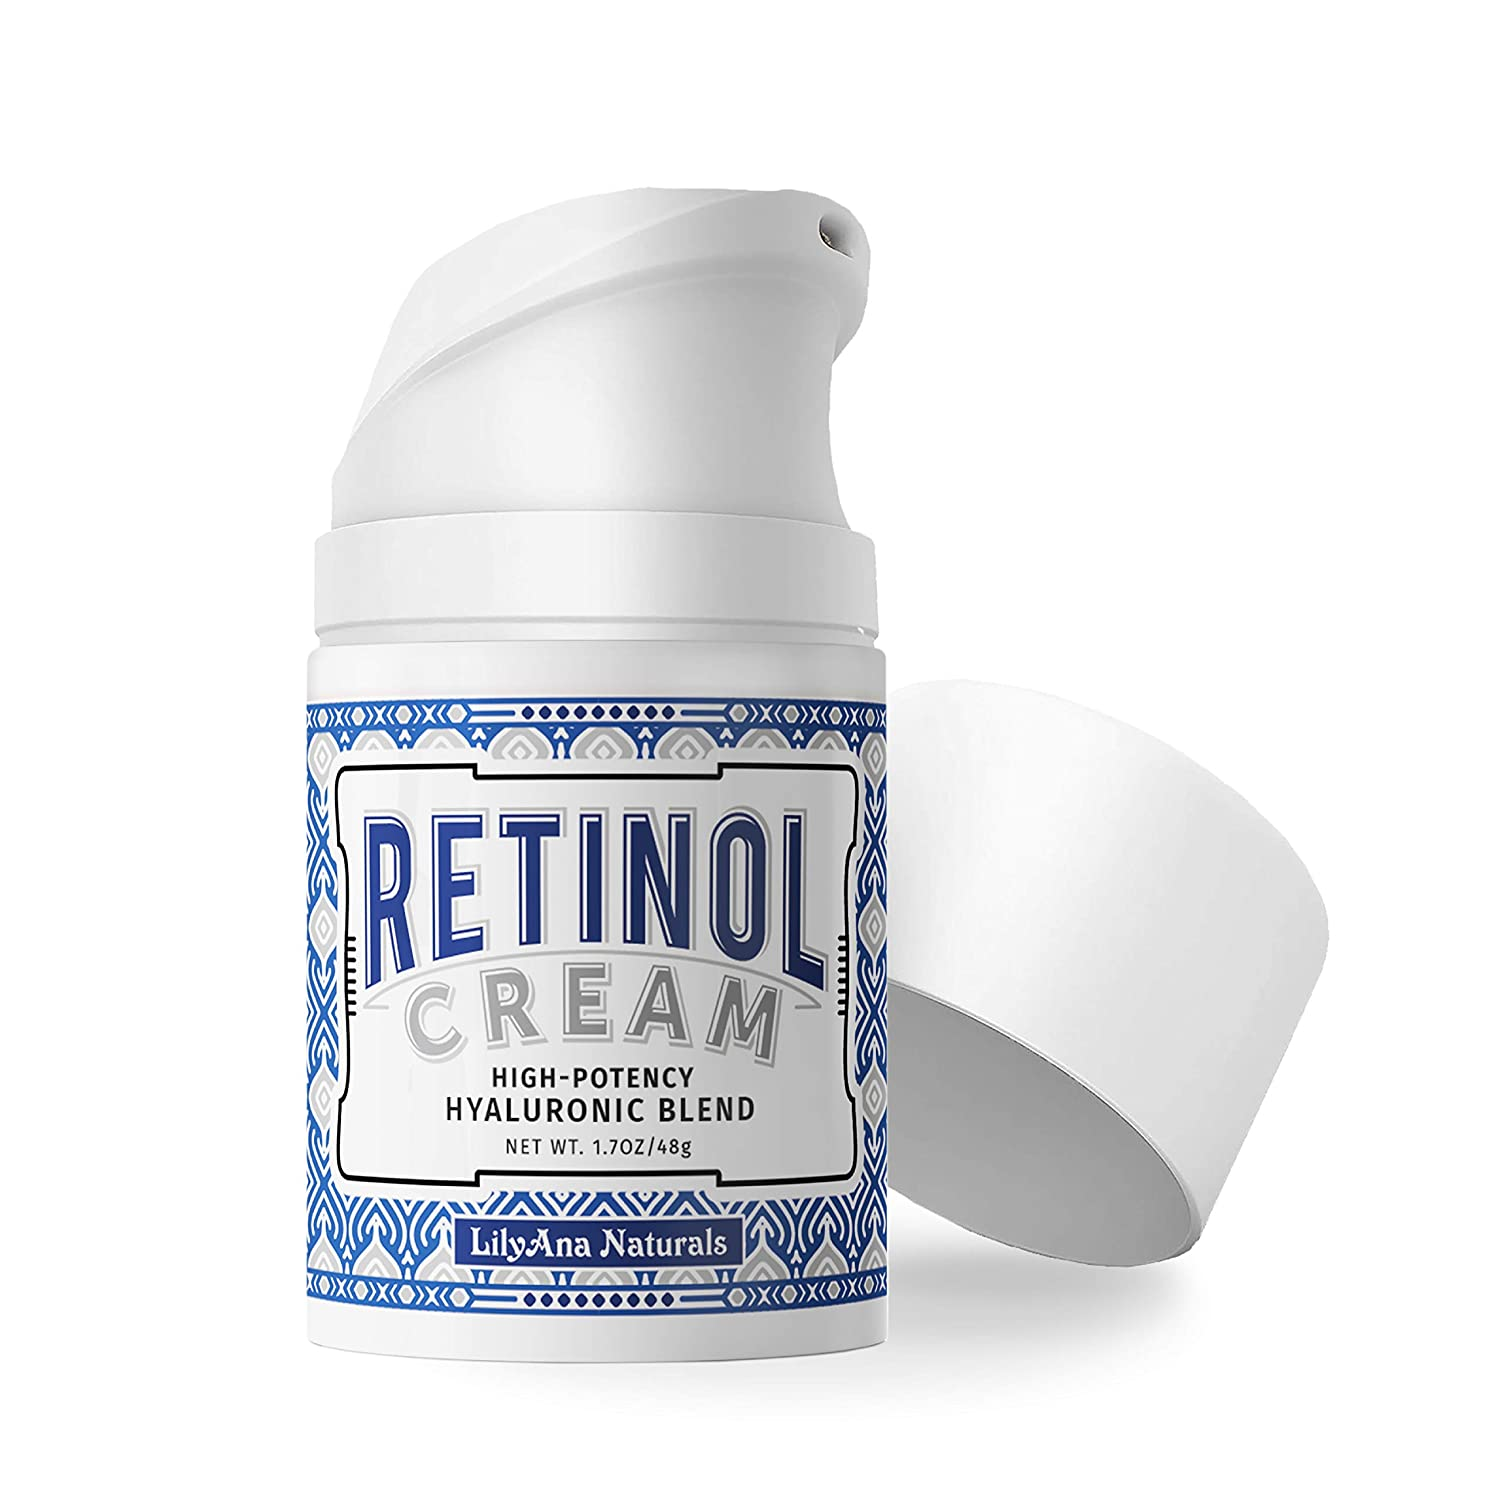 LilyAna Naturals Retinol Cream for Face